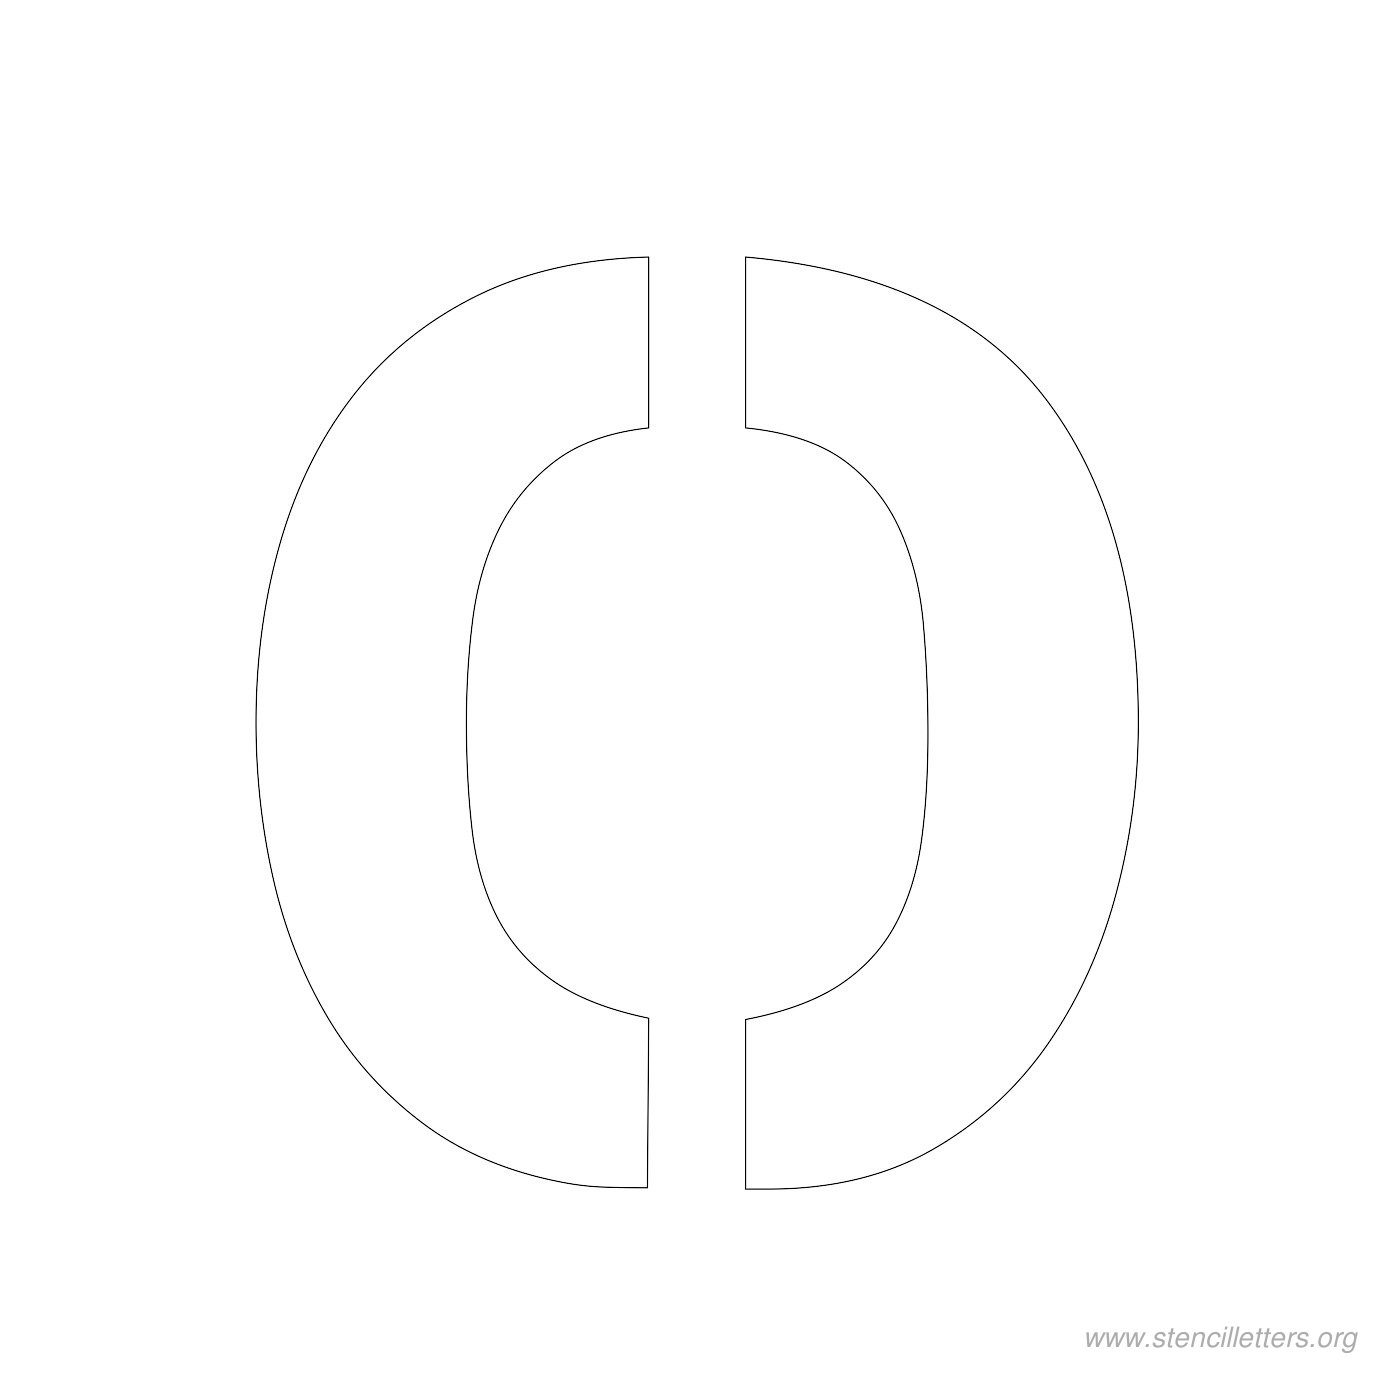 3inch-stencil-letter-o  Inch Template Letter O on 4 inch traceable letters, 4 inch bubble letters, 4 inch block letters, 4 inch printable numbers, 4 inch bulletin board letters printable, 3 inch letter template, 5 inch letter template, 11 inch letter template, 4 inch label template, 4 inch alphabet stencils printable, 2 inch block letter template, 4 inch banner template, 4 inch gold letters, one inch letters template, 4 inch hinge template, 4 inch cut out letters, 4 inch wooden letters, 4 inch letters to trace, 2 inch alphabet letters printable template, 9 inch letter template,